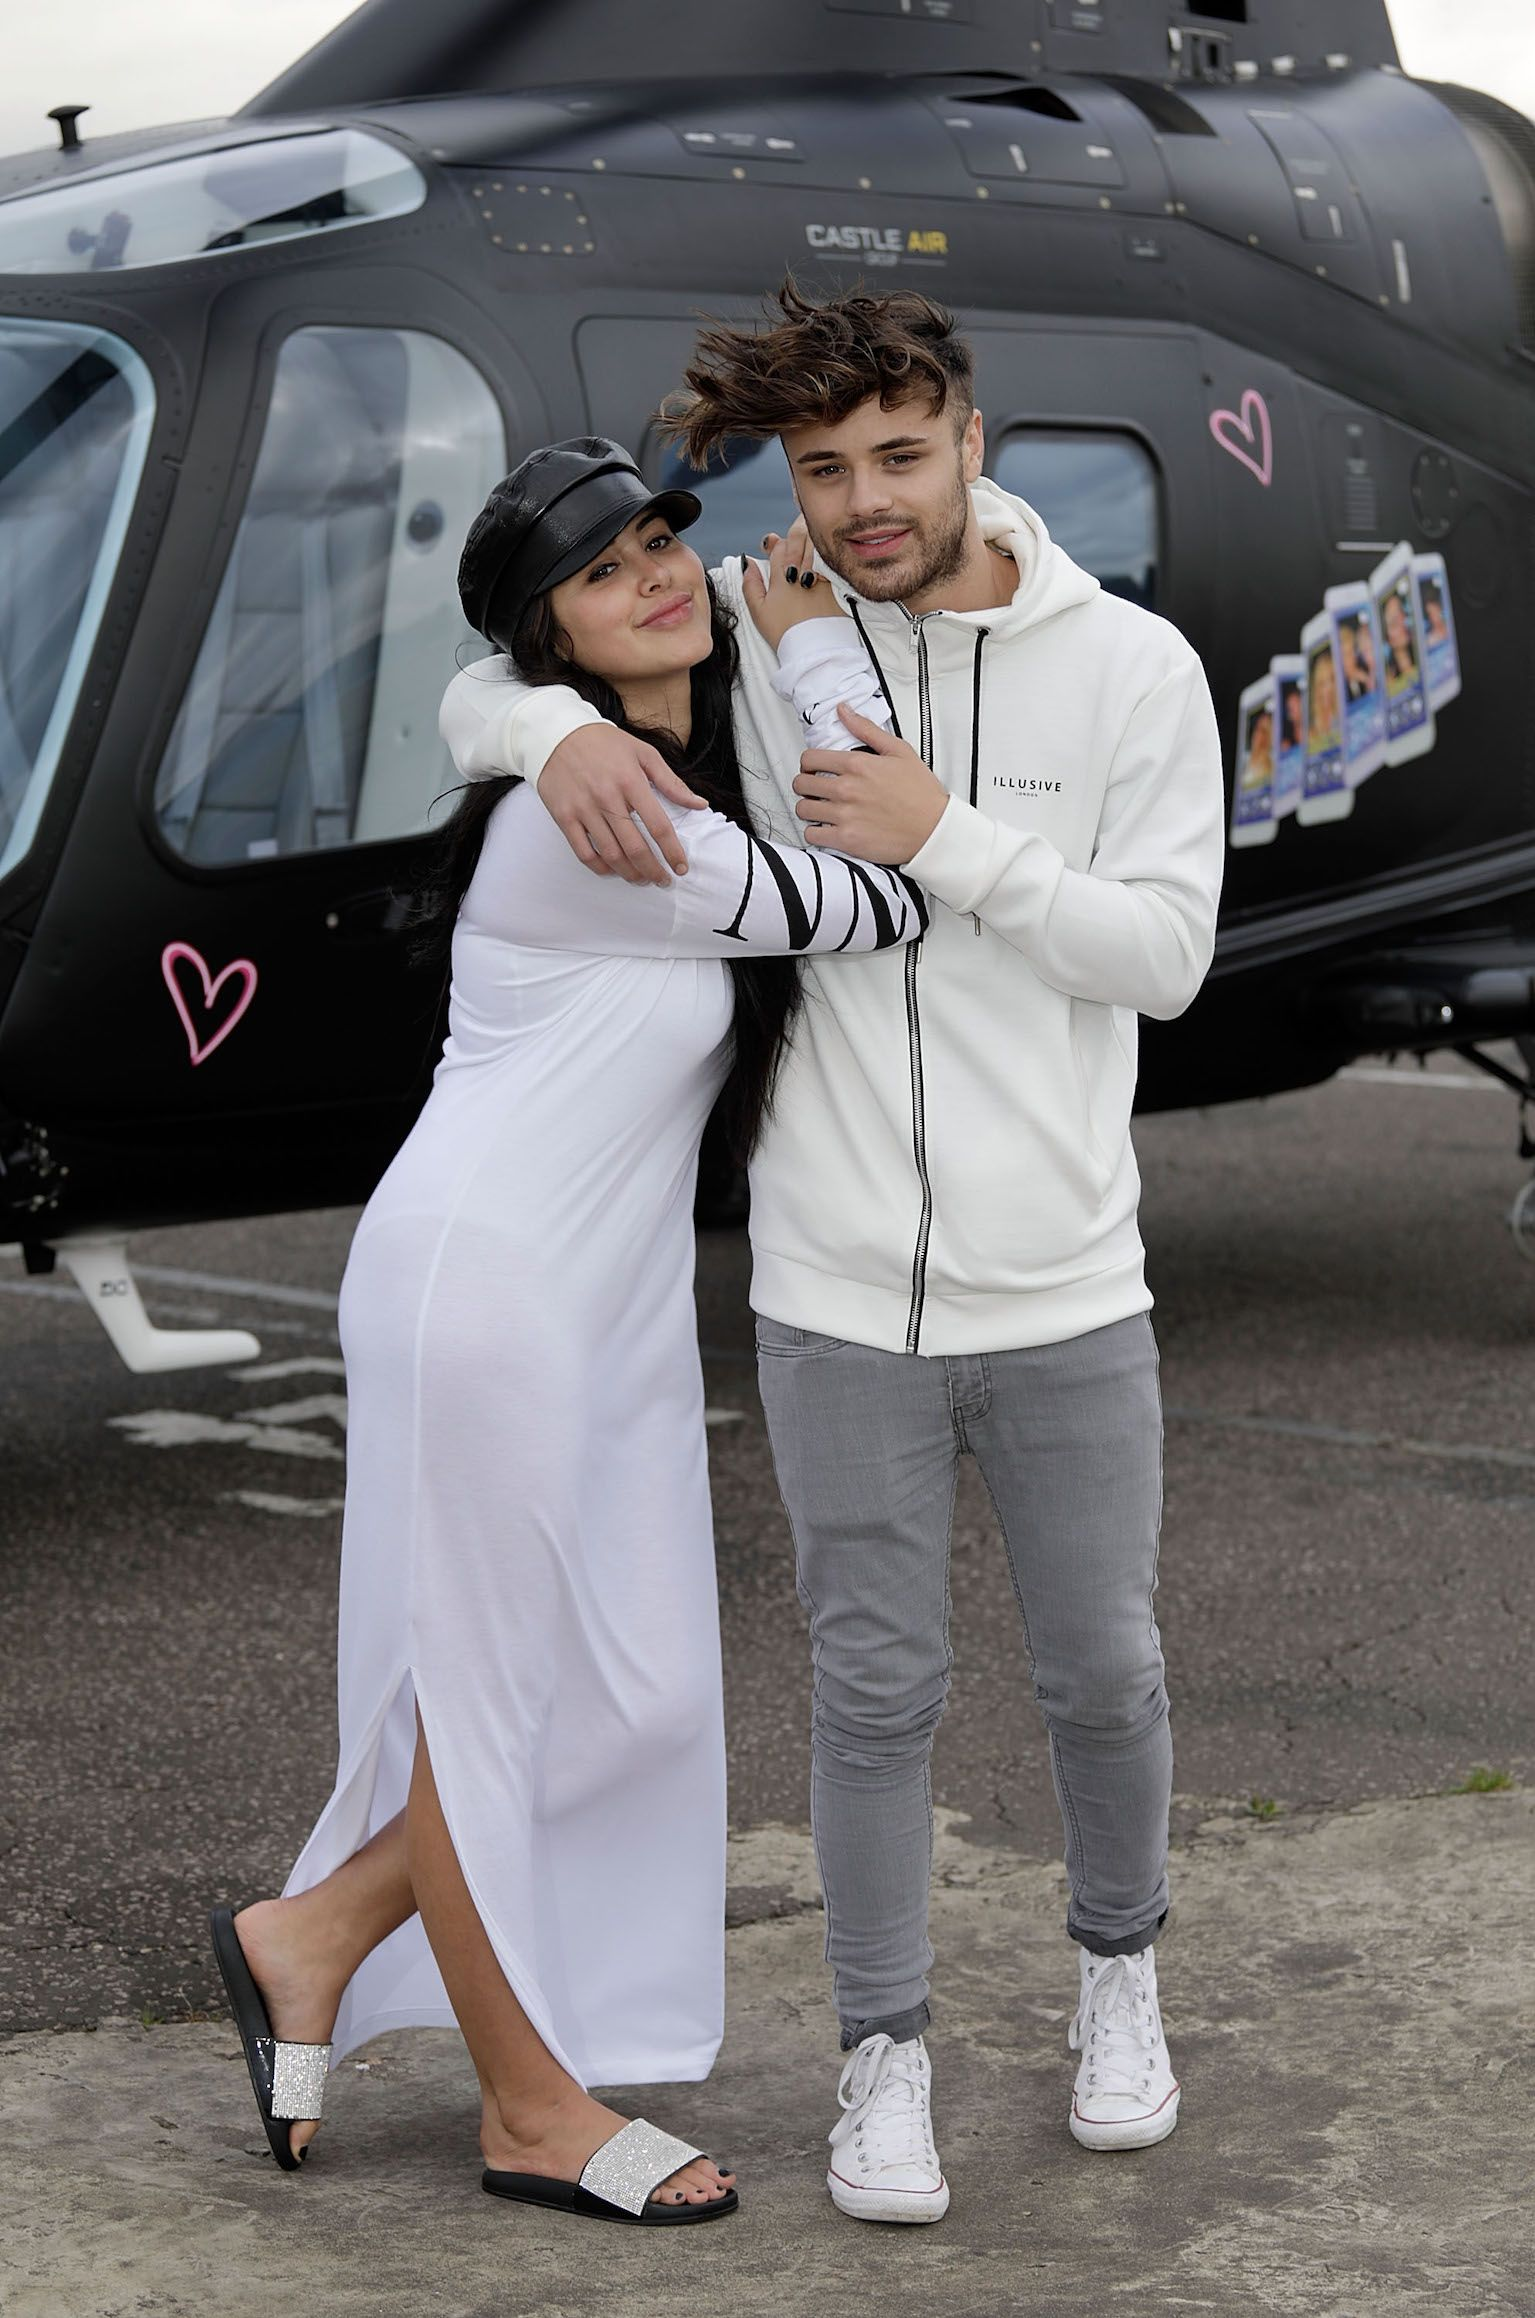 Geordie Shore star Marnie Simpson confirms baby name with cute Instagram snap